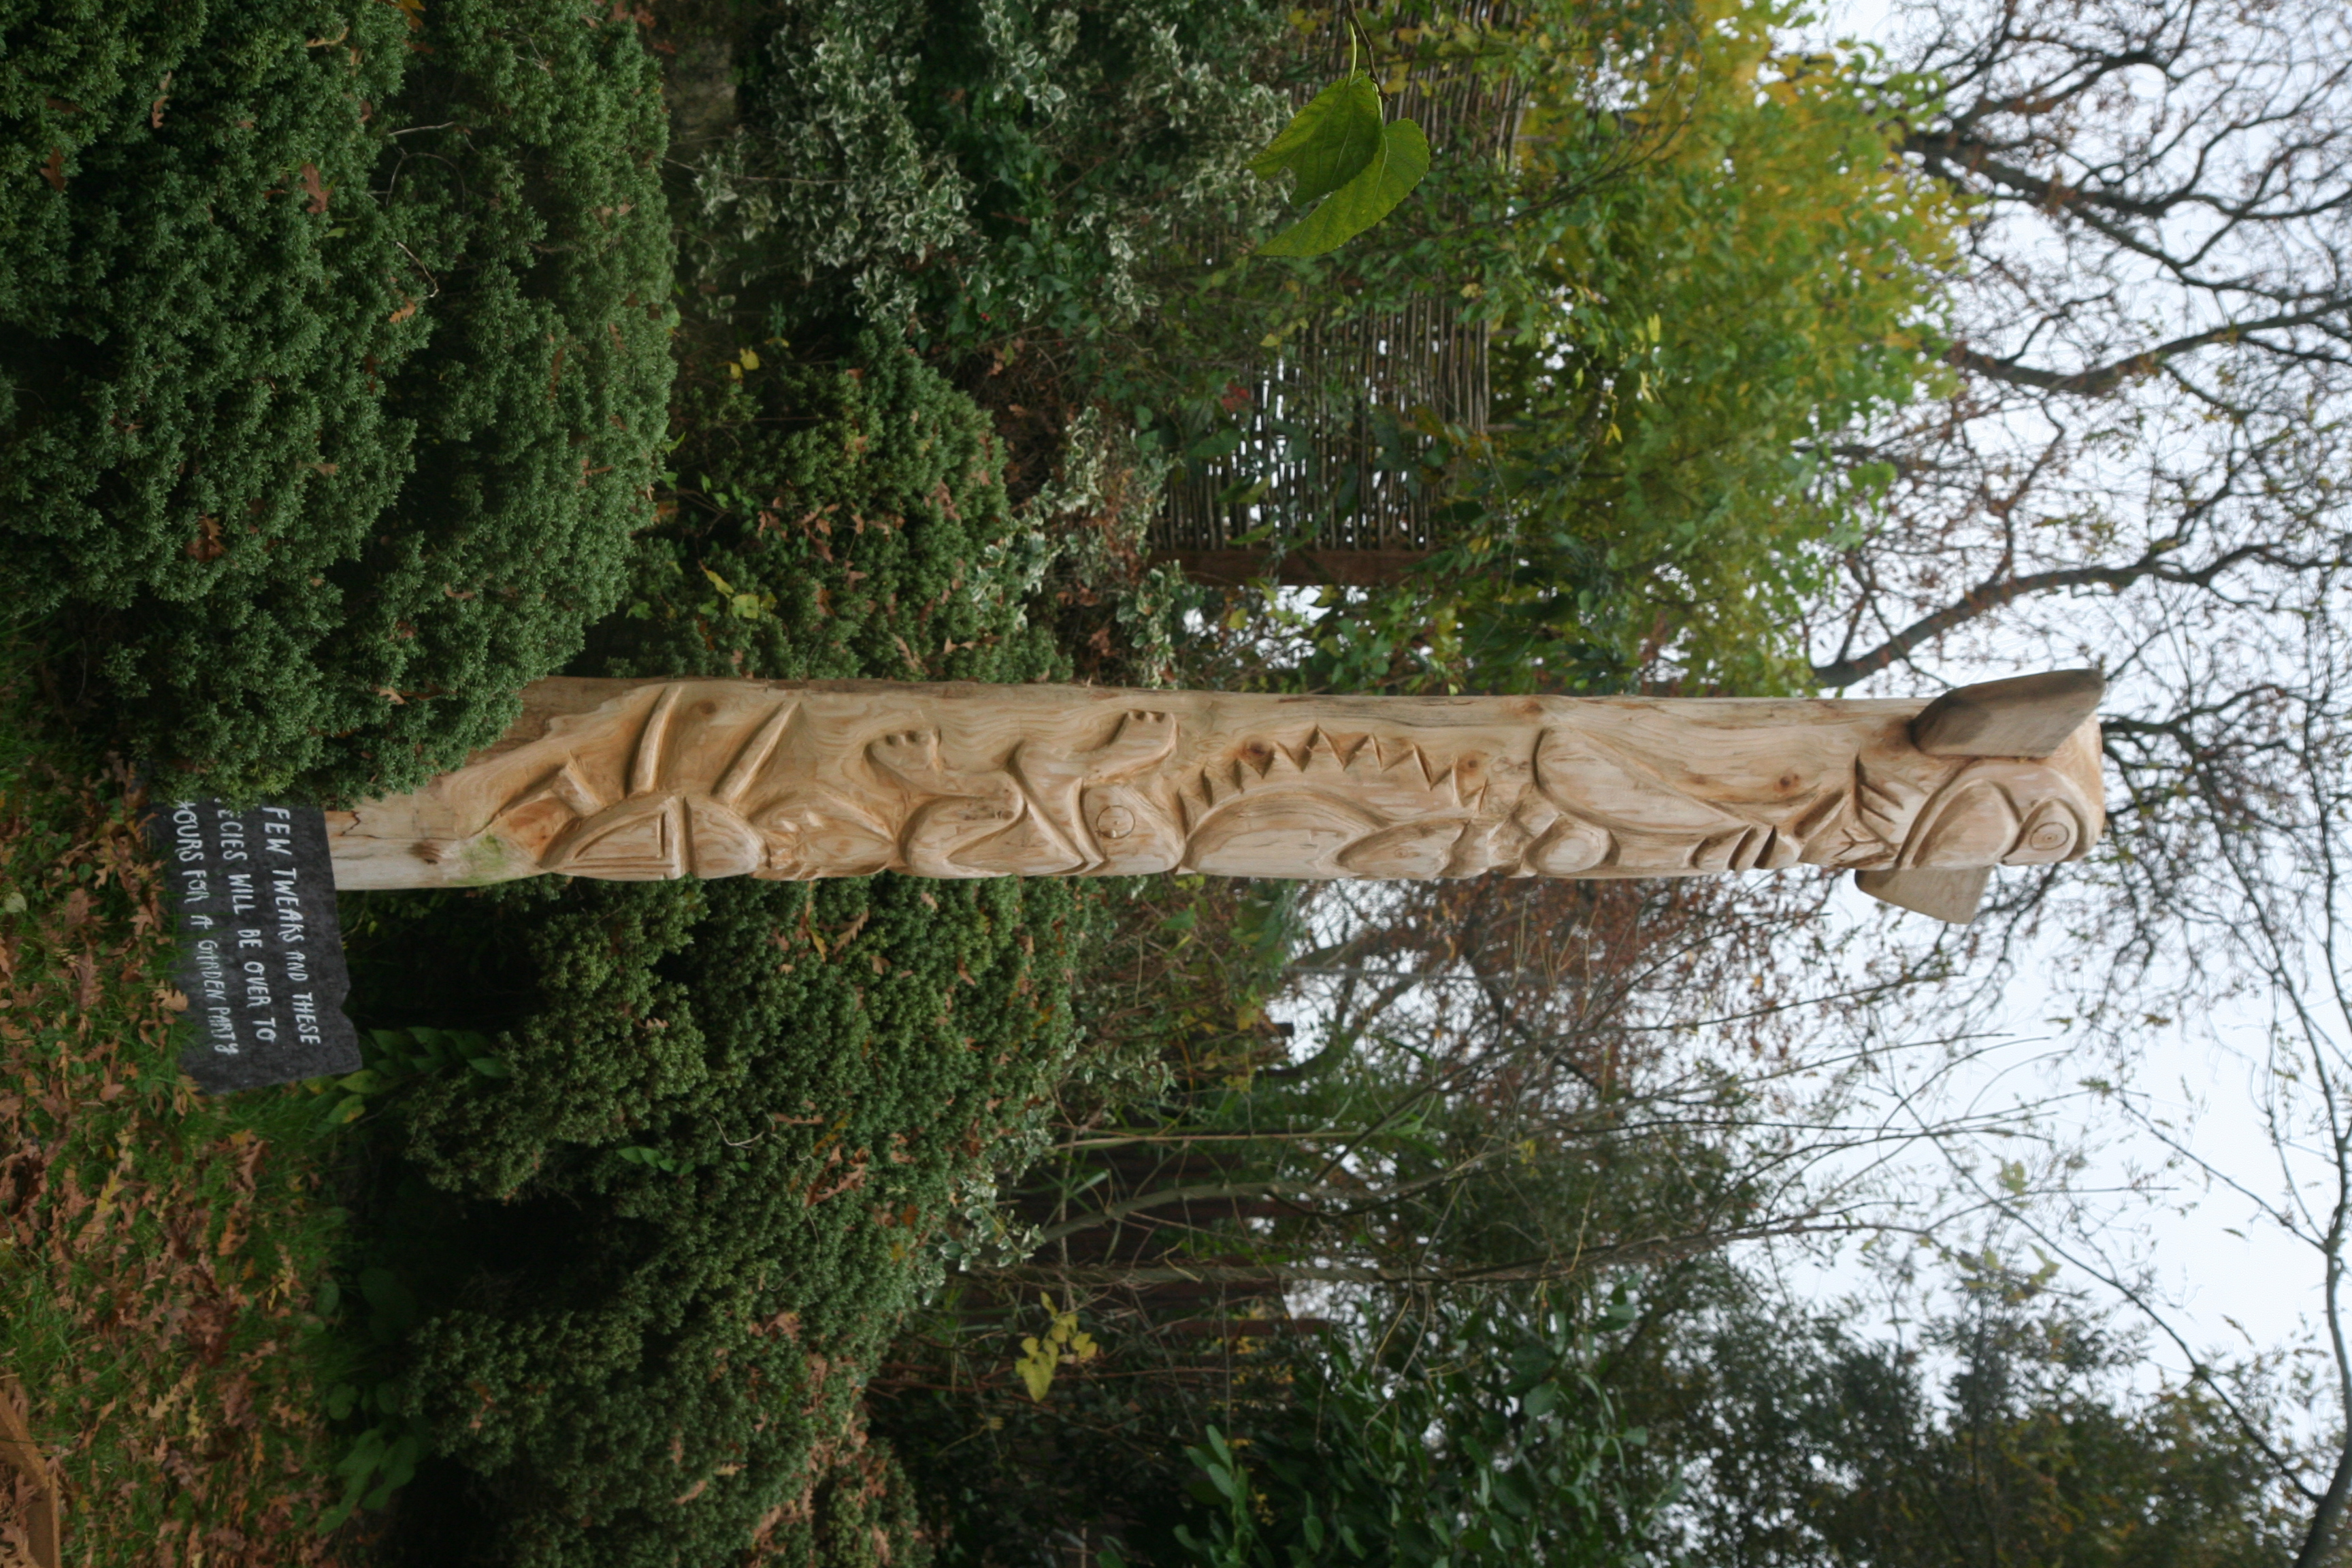 London Zoo - Totem pole